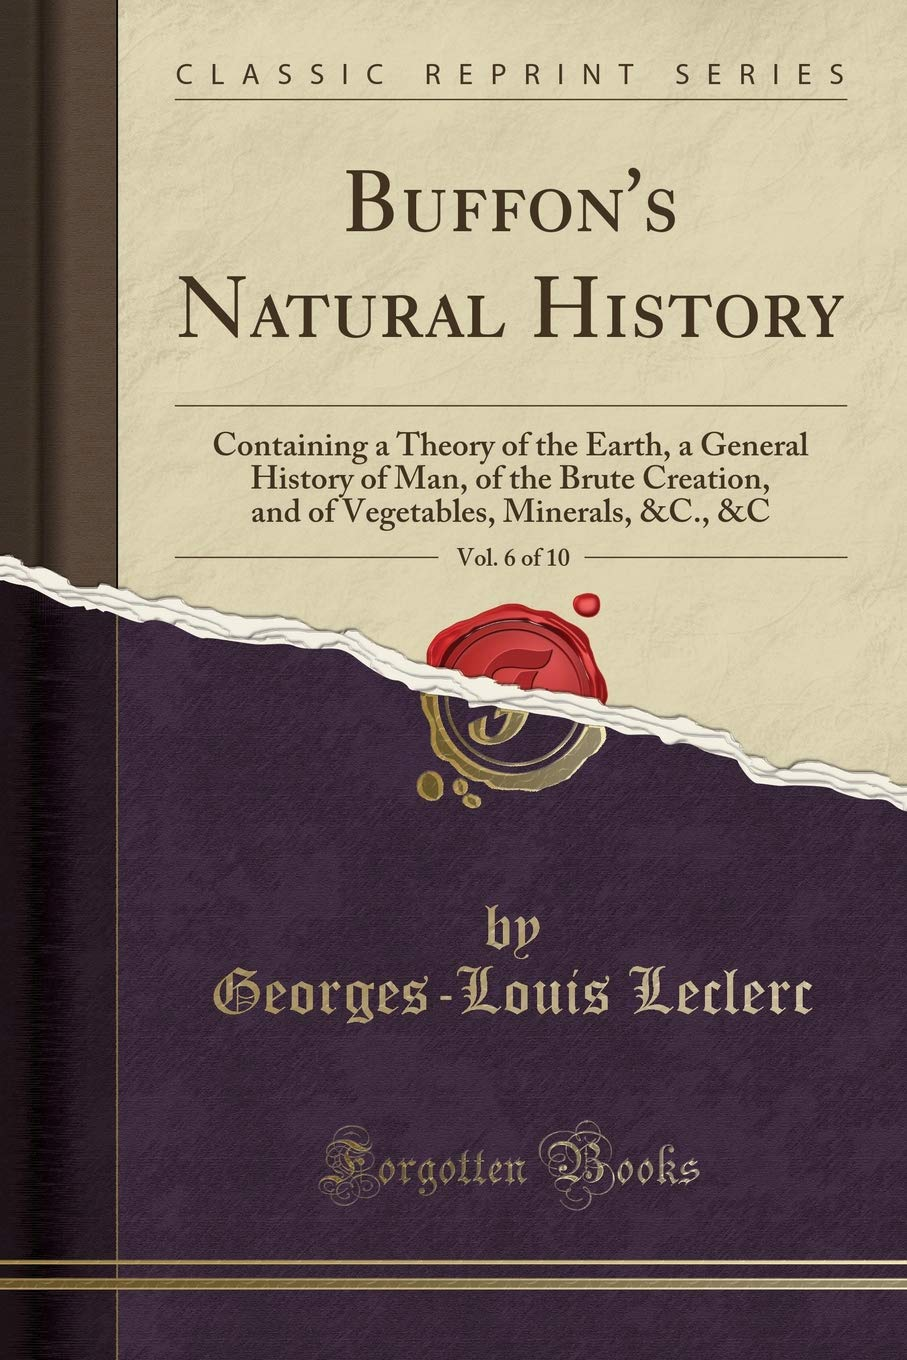 Buffon's Natural History, Vol. 6 of 10: Containing a Theory of the Earth, a General History of Man, of the Brute Creation, and of Vegetables, Minerals, &C., &C (Classic Reprint) pdf epub